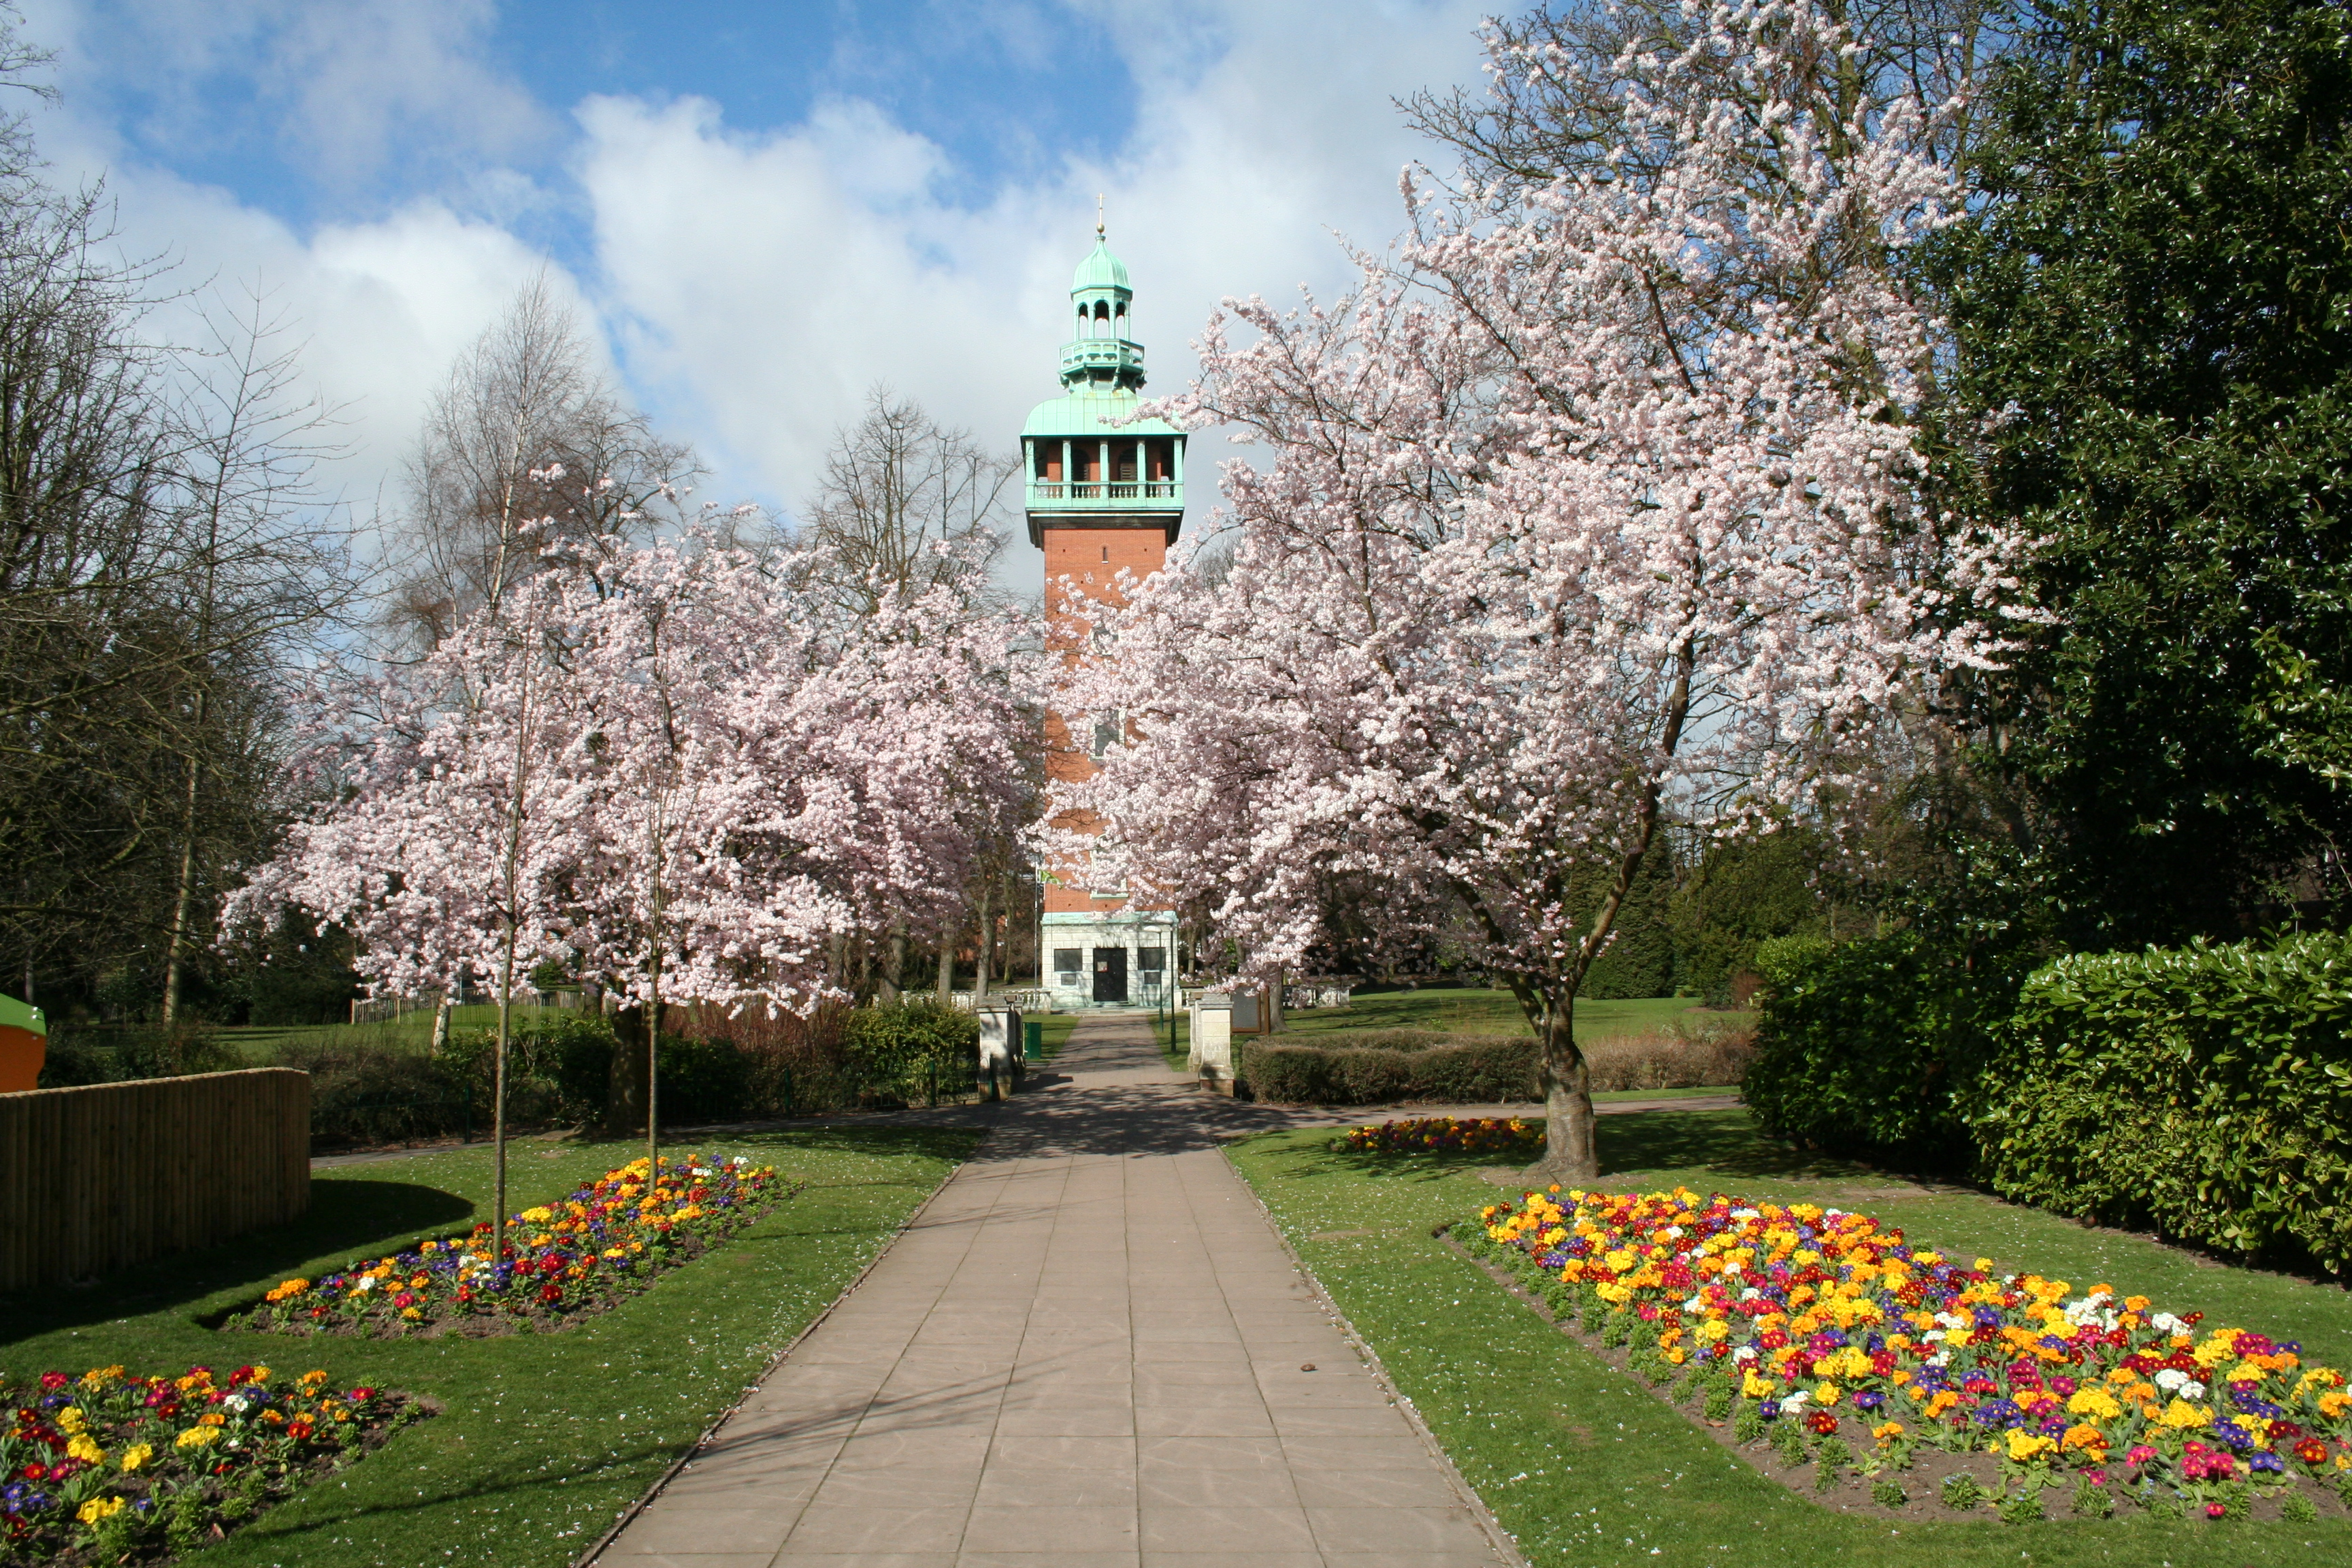 Queen's Park - Parks and open spaces - Charnwood Borough Council